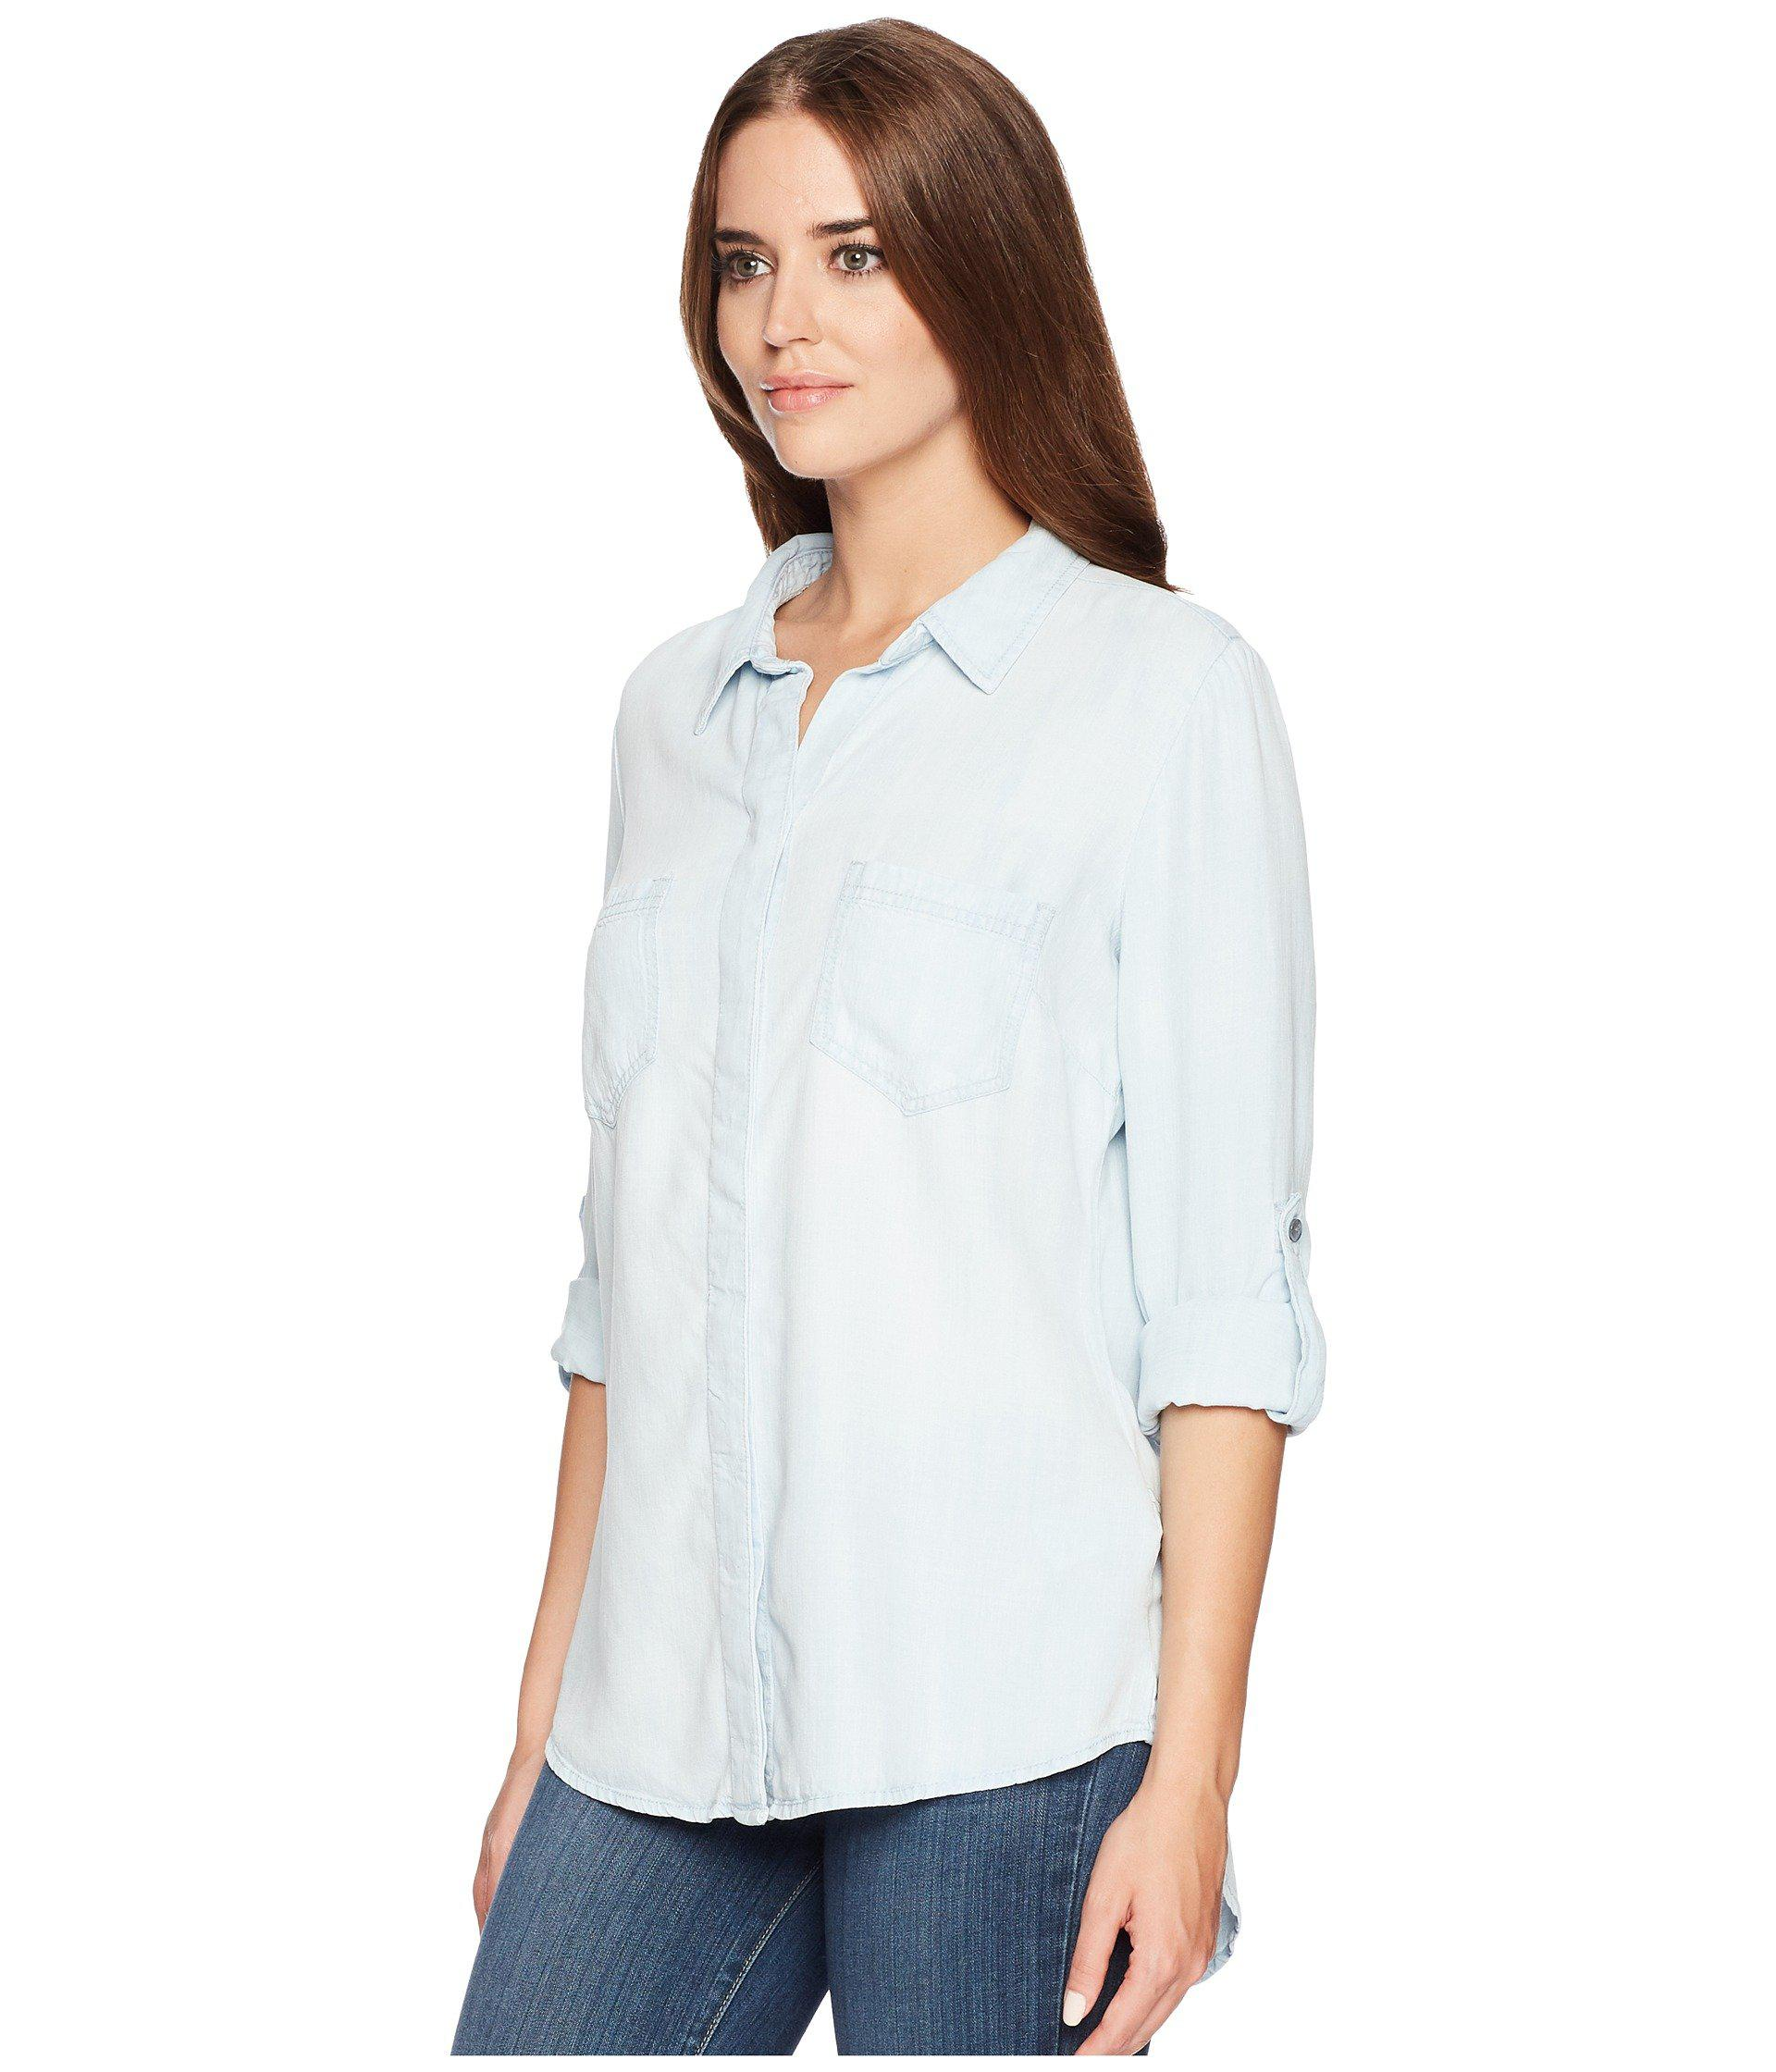 f53f9e818cd Lyst - Liverpool Jeans Company Button Down Shirt (del Norte Bleach) Women s  Clothing in White